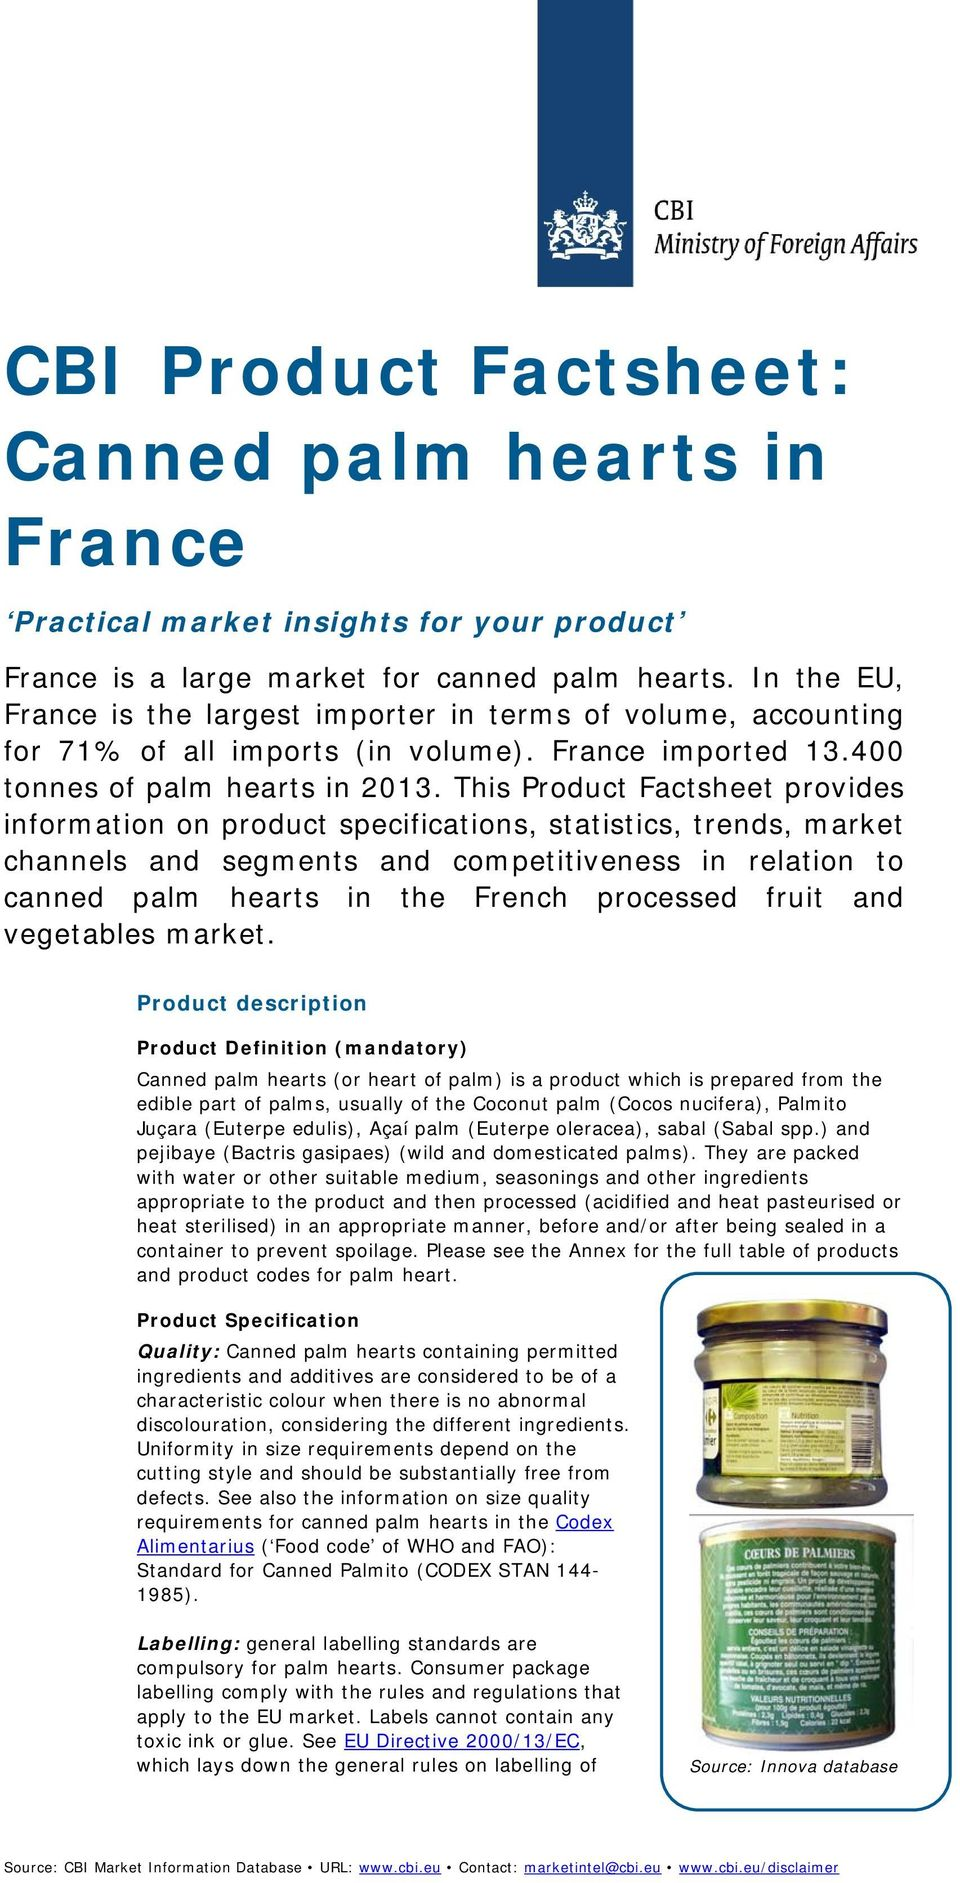 This Product Factsheet provides information on product specifications, statistics, trends, market channels and segments and competitiveness in relation to canned palm hearts in the French processed